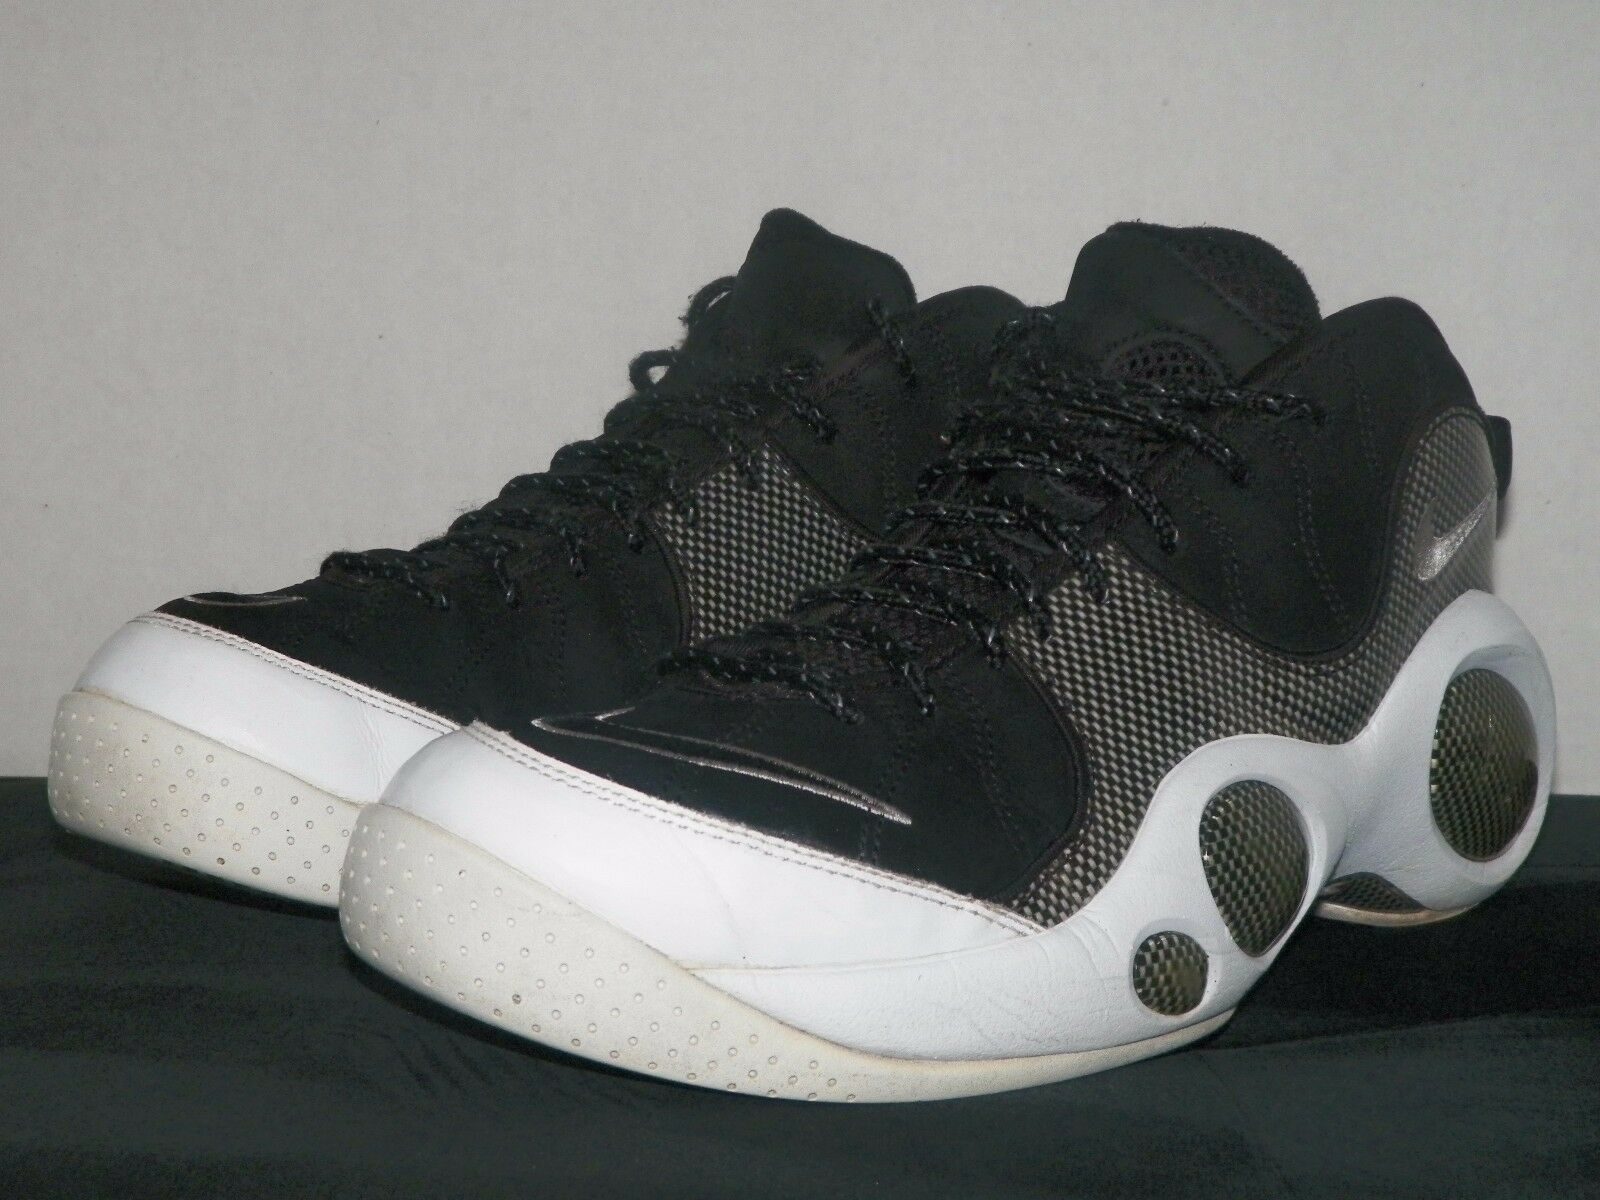 fa7afb66d55 2007 Nike Air Zoom Flight 95 - Size 10.5 - Black - White - Jason Kidd 1 of  9Only 1 available ...